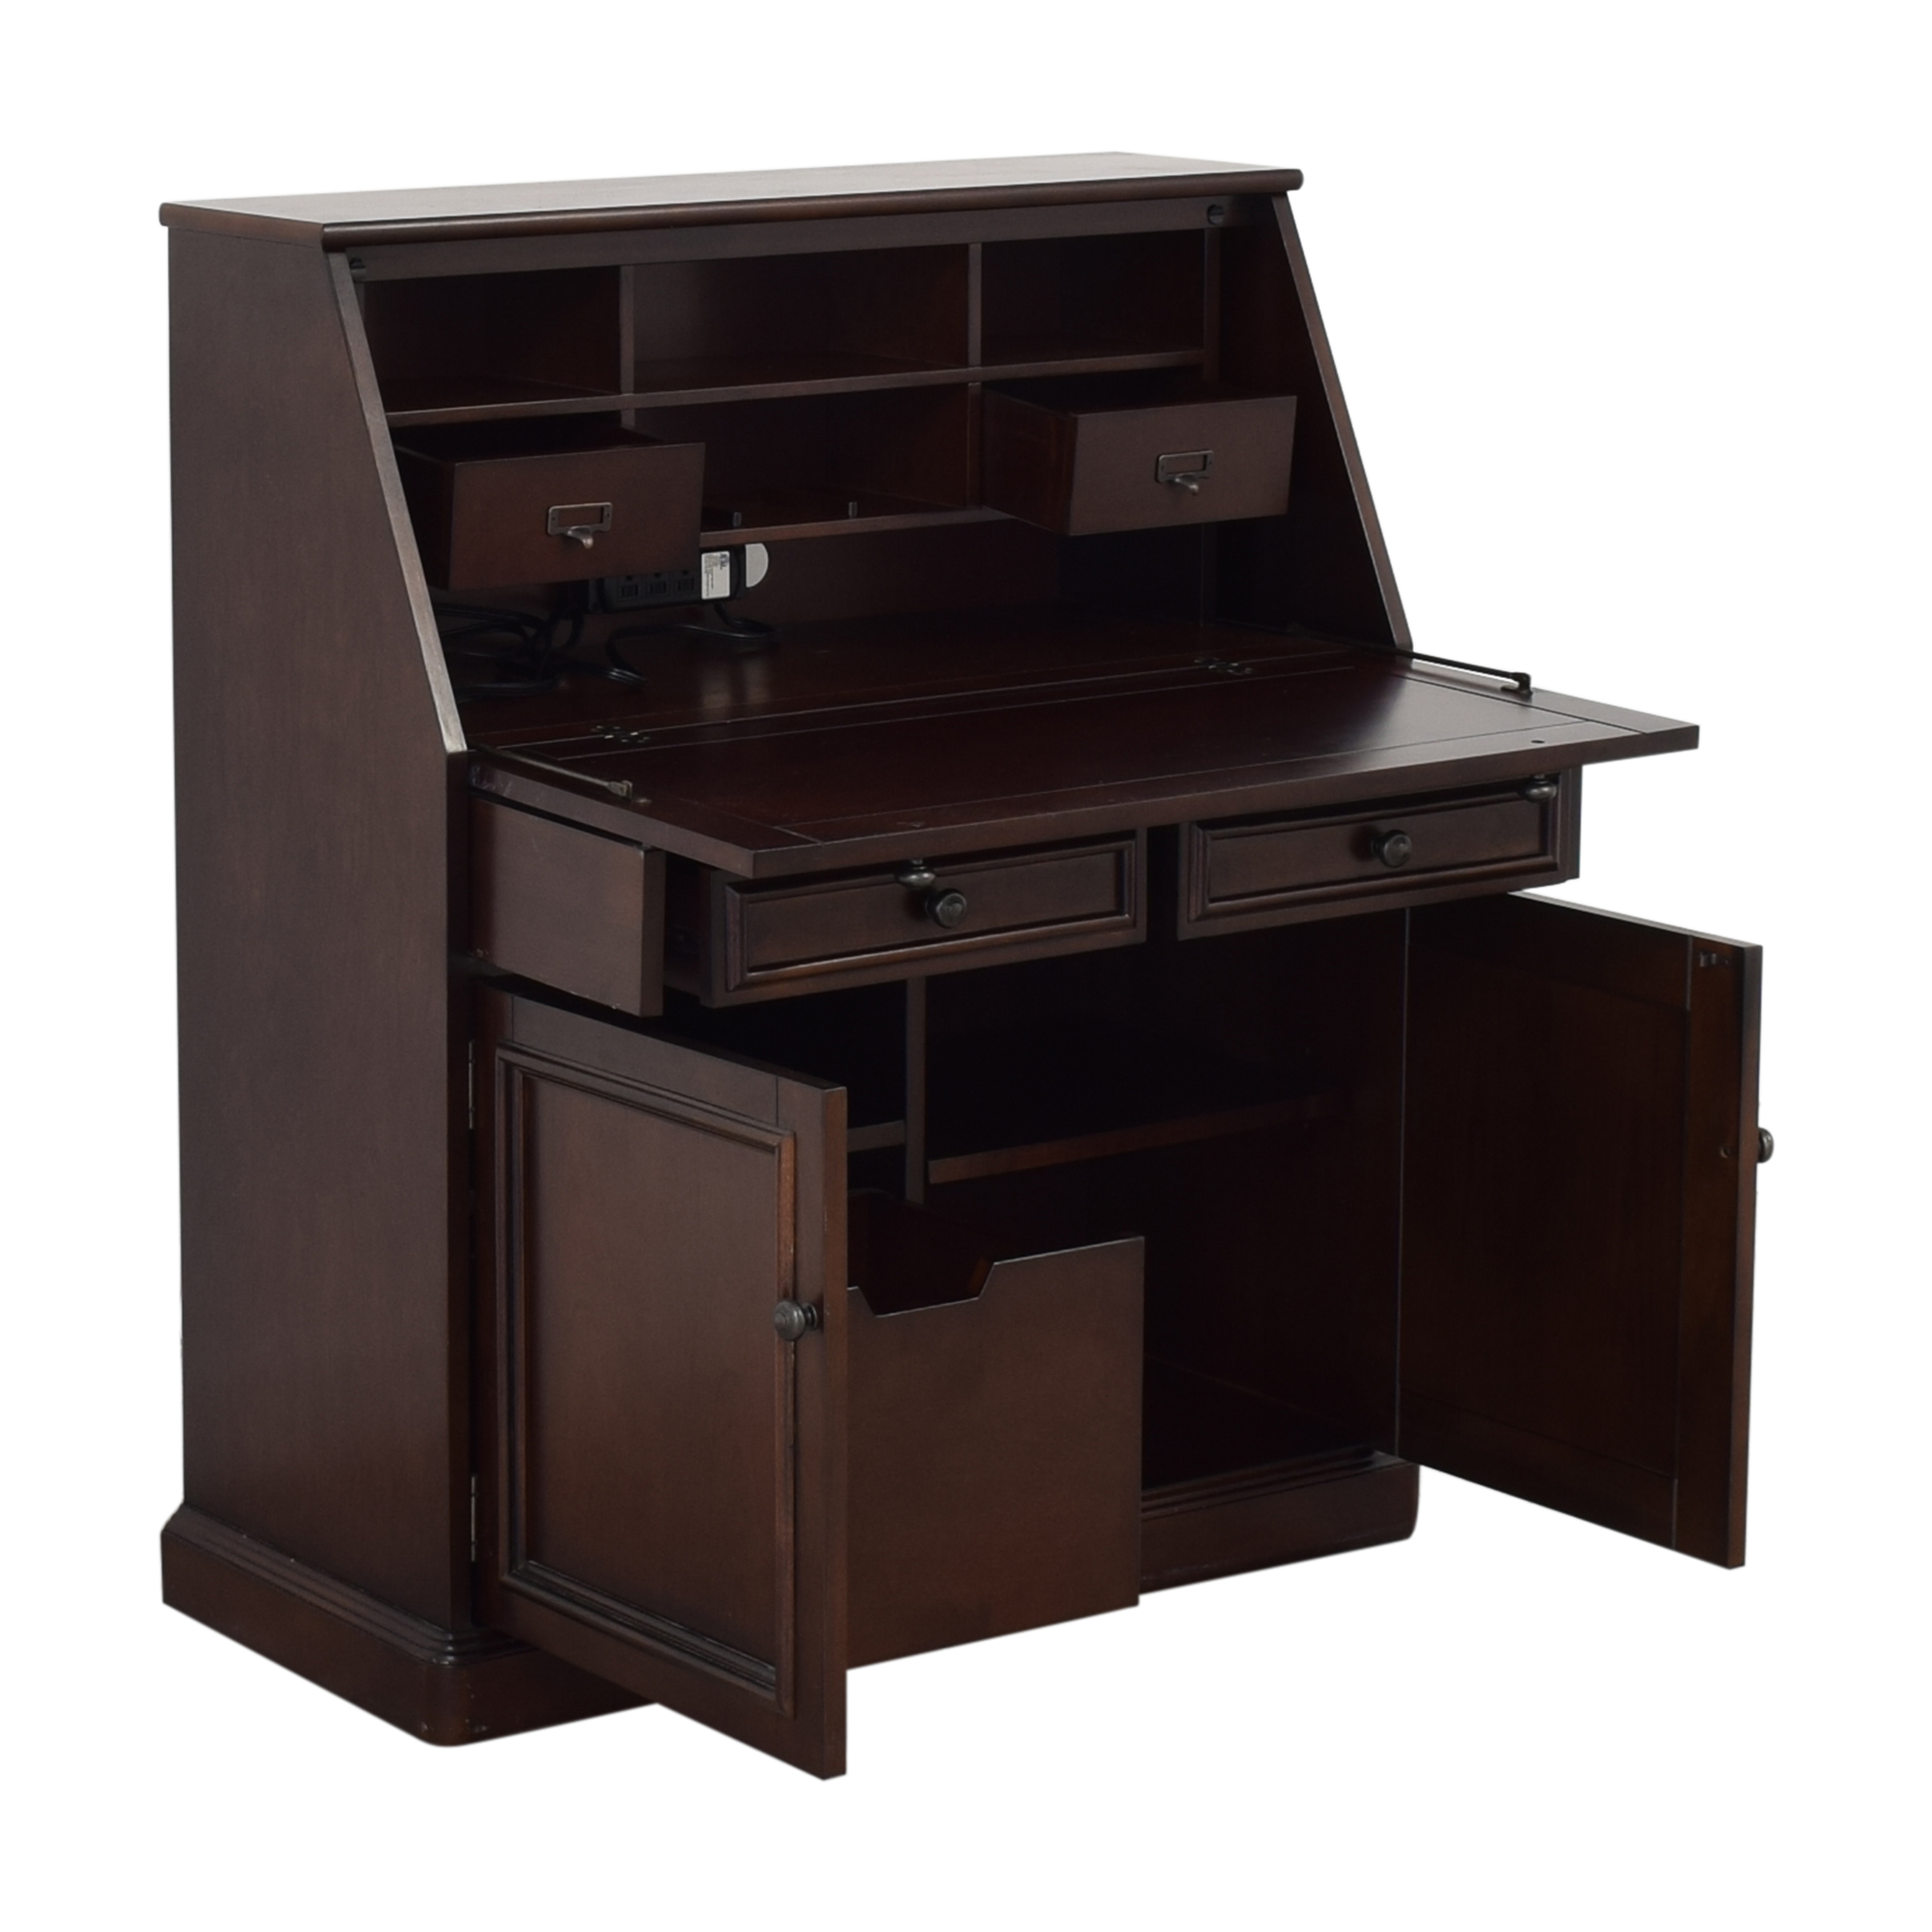 27 Off Raymour Flanigan Raymour Flanigan Jennings Laptop Desk Armoire Storage